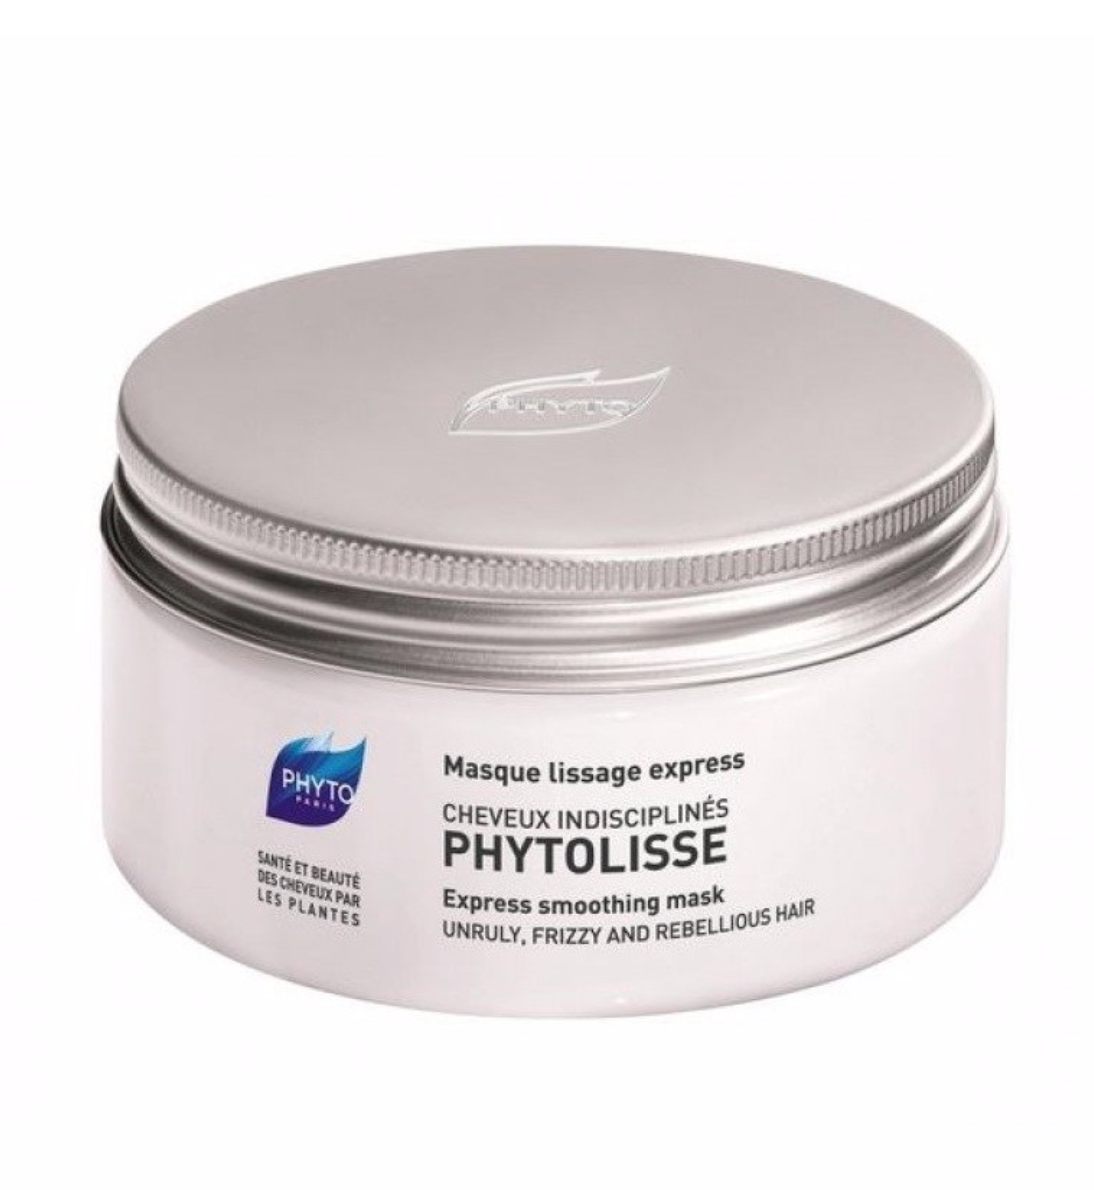 Shop Phyto Phytolisse Express Smoothing Mask 6.7 fl oz.at New London Pharmacy. Free shipping on all orders of $50.00.